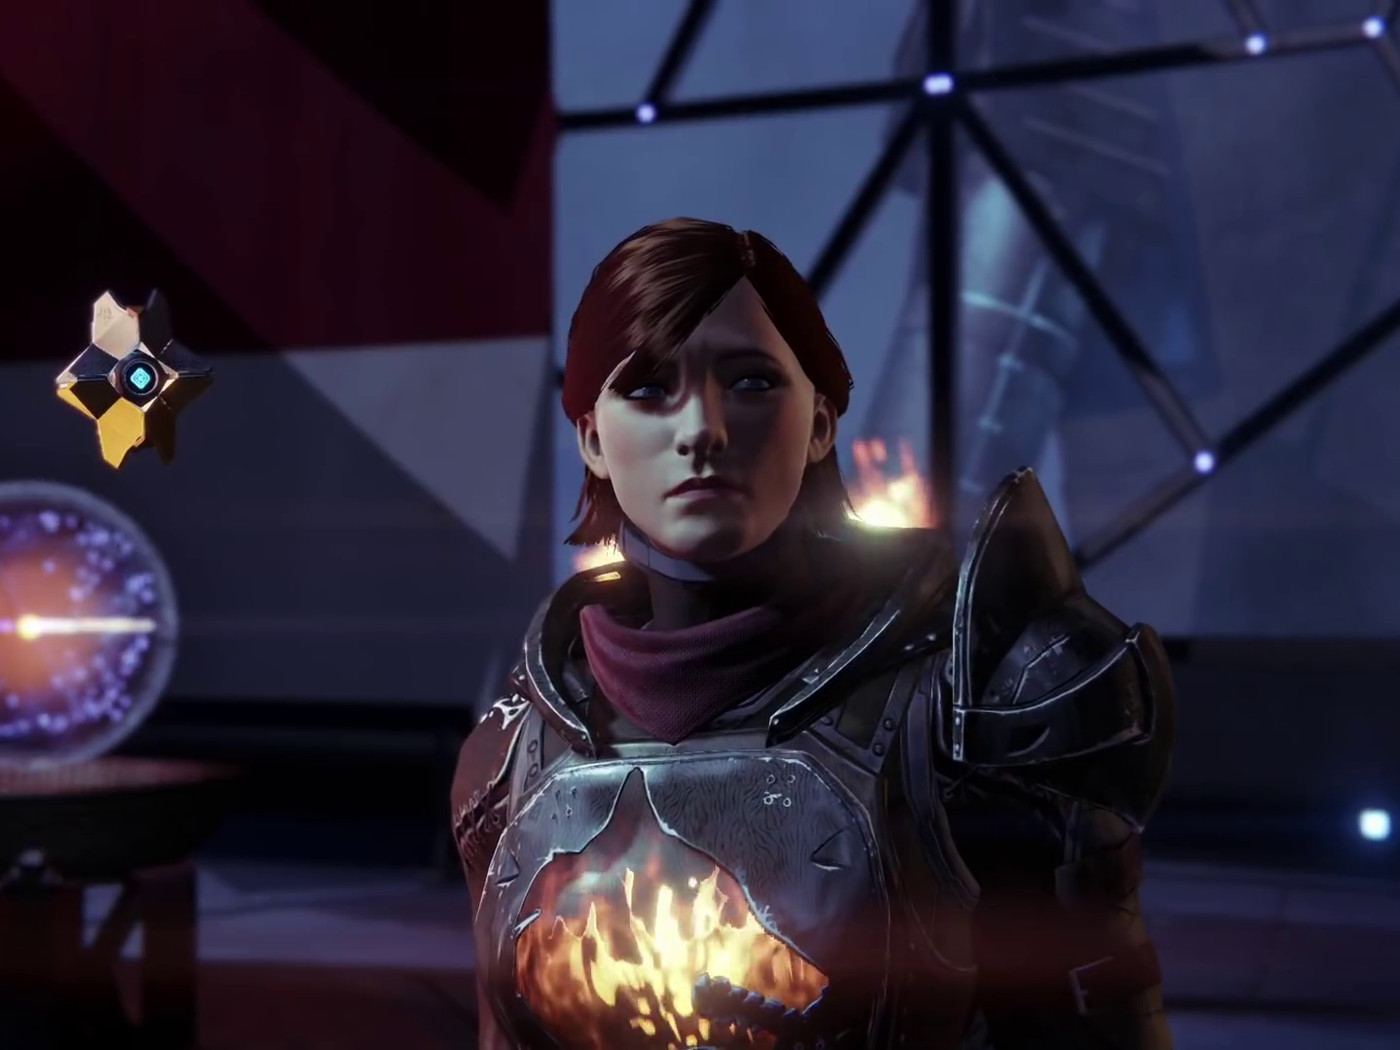 Watch Bungie Reveal Destinys Age Of Triumph Update Here